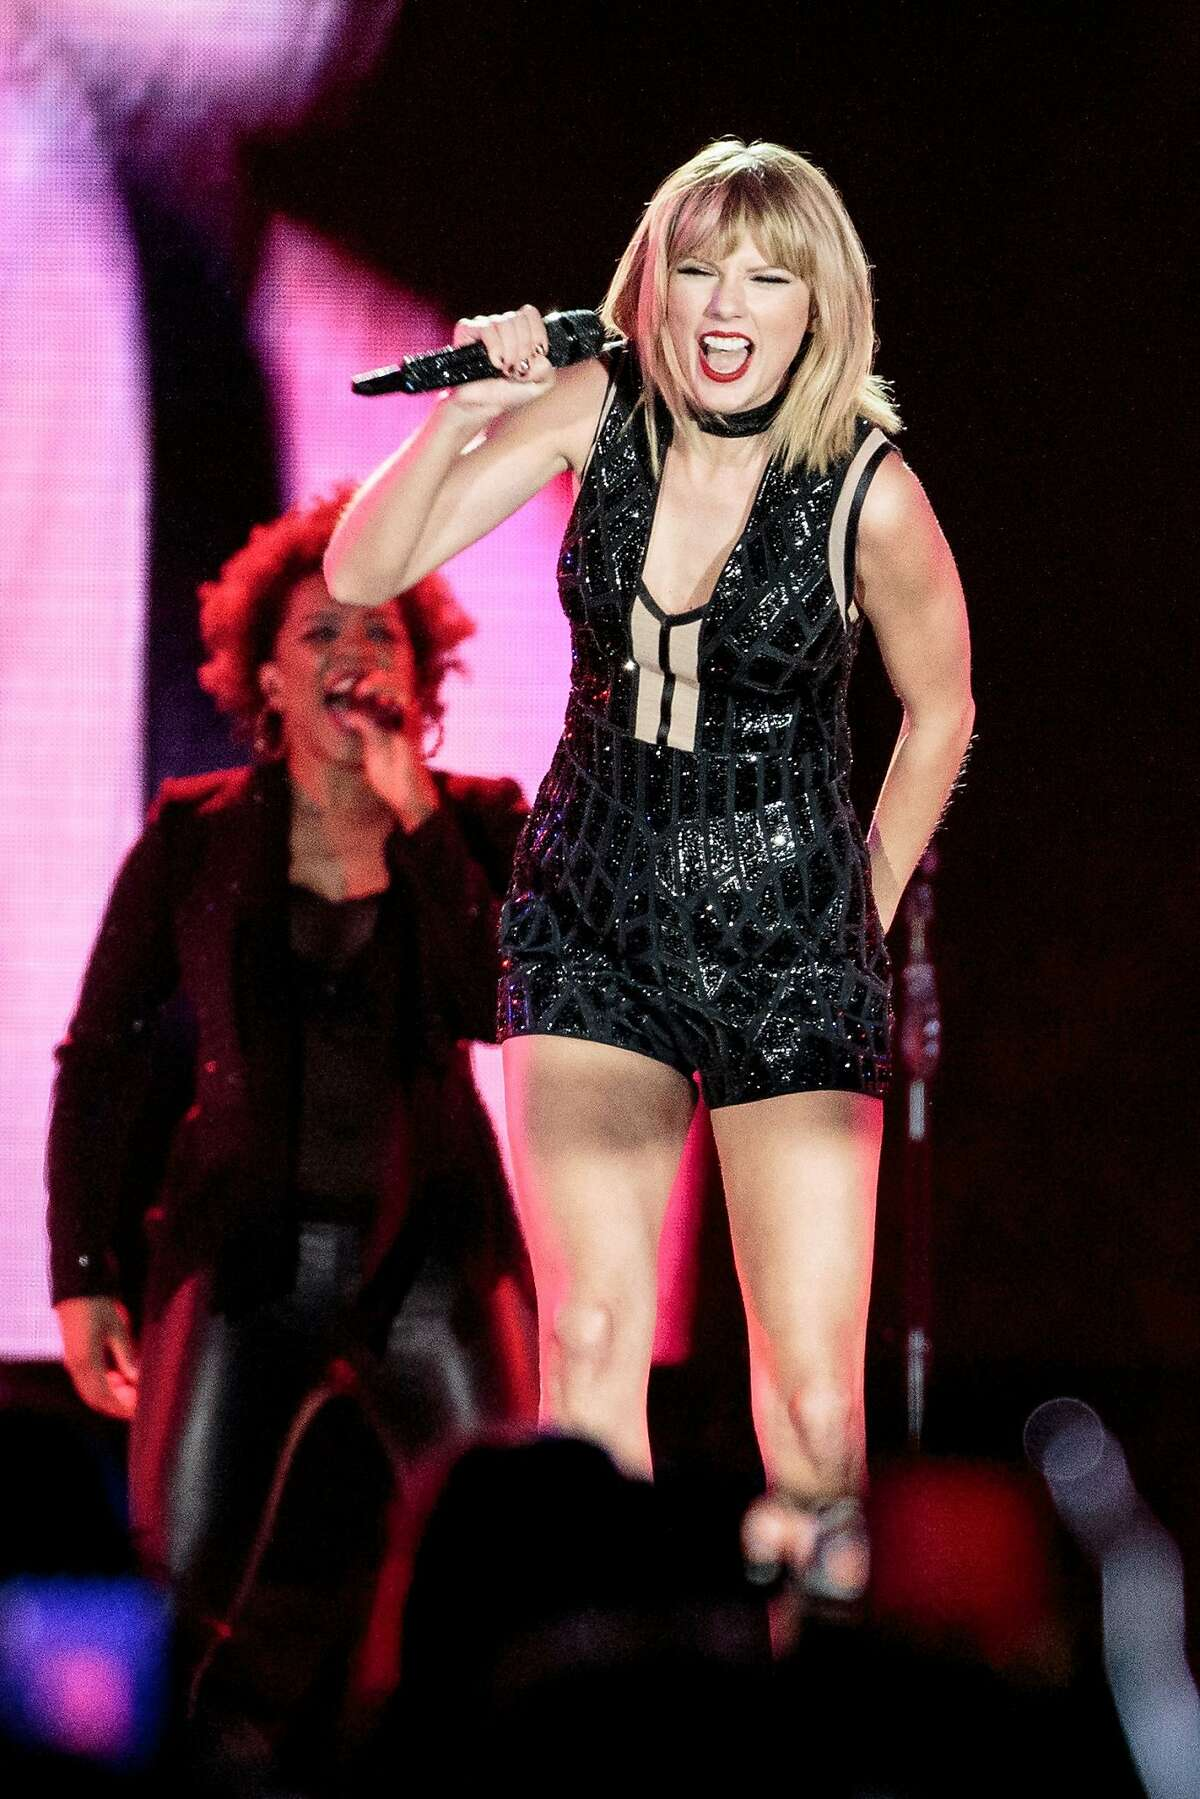 Singer-songwriter Taylor Swift performs her only full concert of 2016 during the Formula 1 United States Grand Prix at Circuit of The Americas on October 22, 2016 in Austin, Texas. / AFP PHOTO / SUZANNE CORDEIROSUZANNE CORDEIRO/AFP/Getty Images